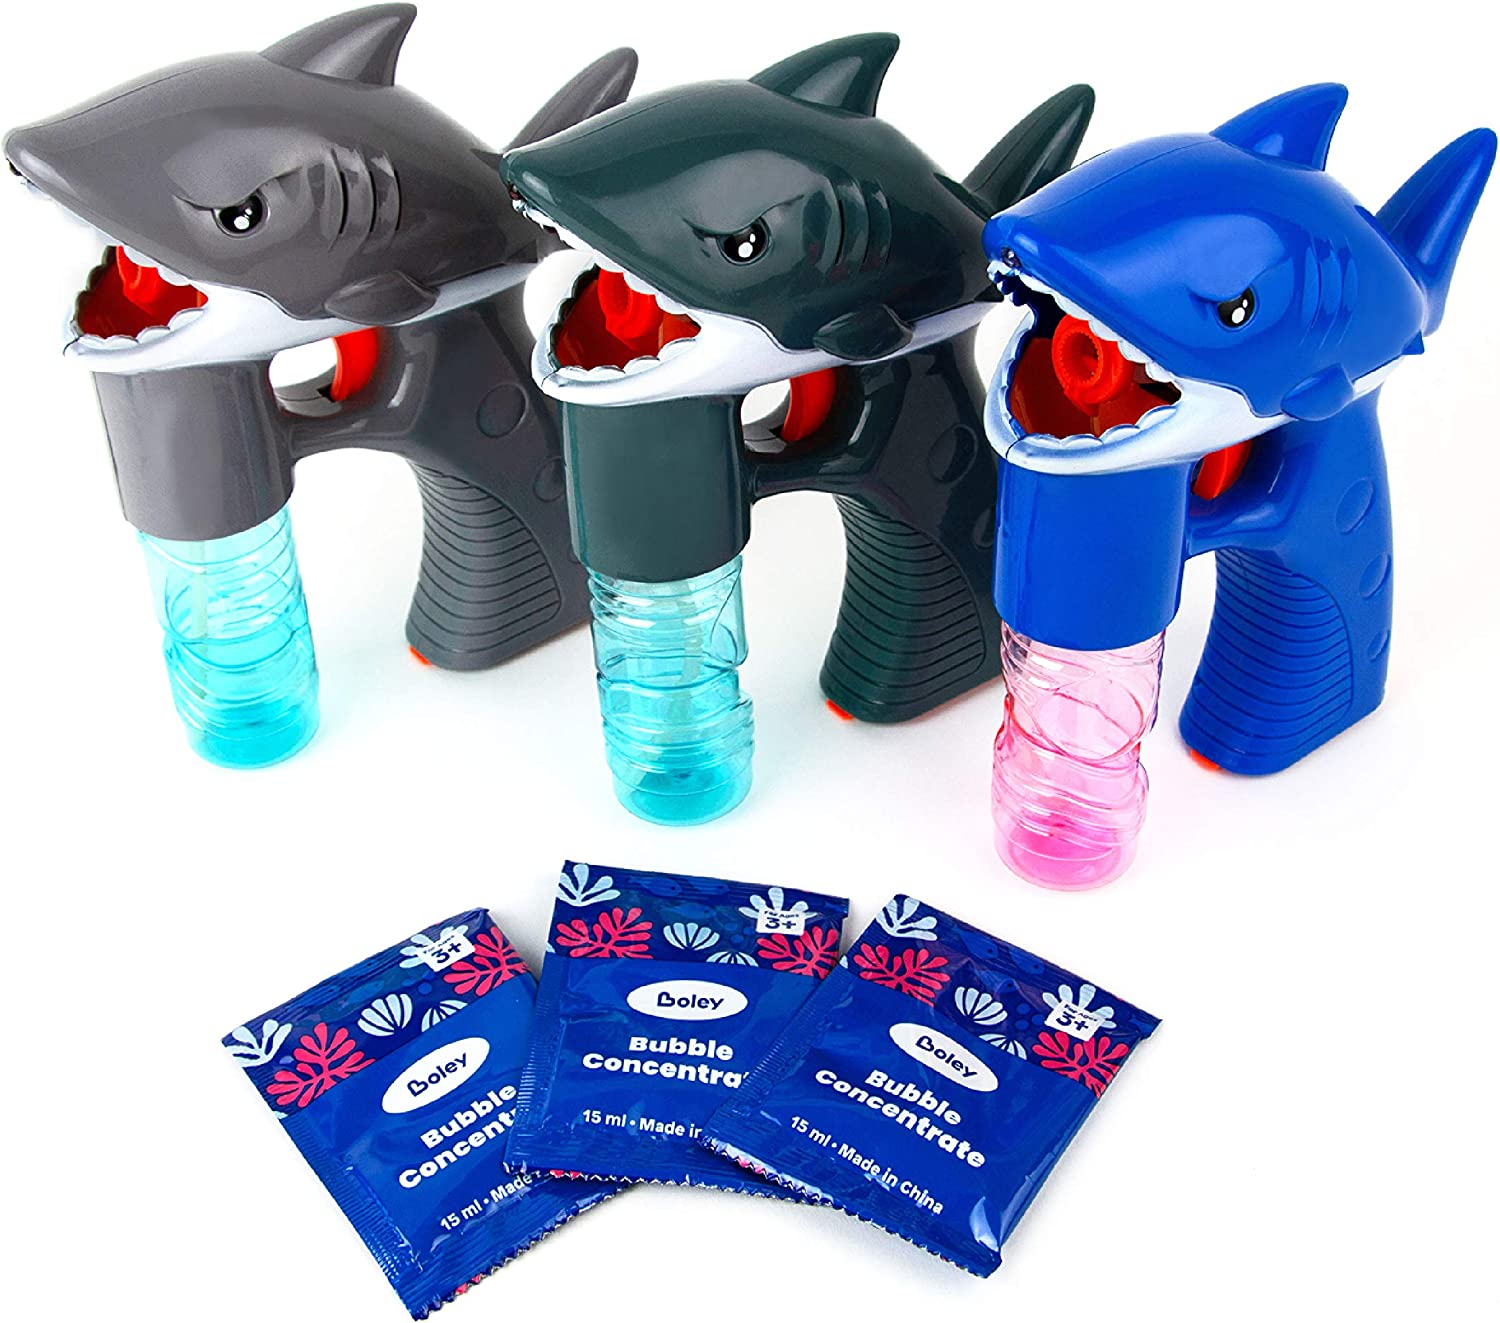 Boley Shark Bubble Guns - 3 Pack Light-Up Bubble Gun for Kids and Toddlers - Sharks Bubble Blower Blaster Machine Shooter for Boys and Girls